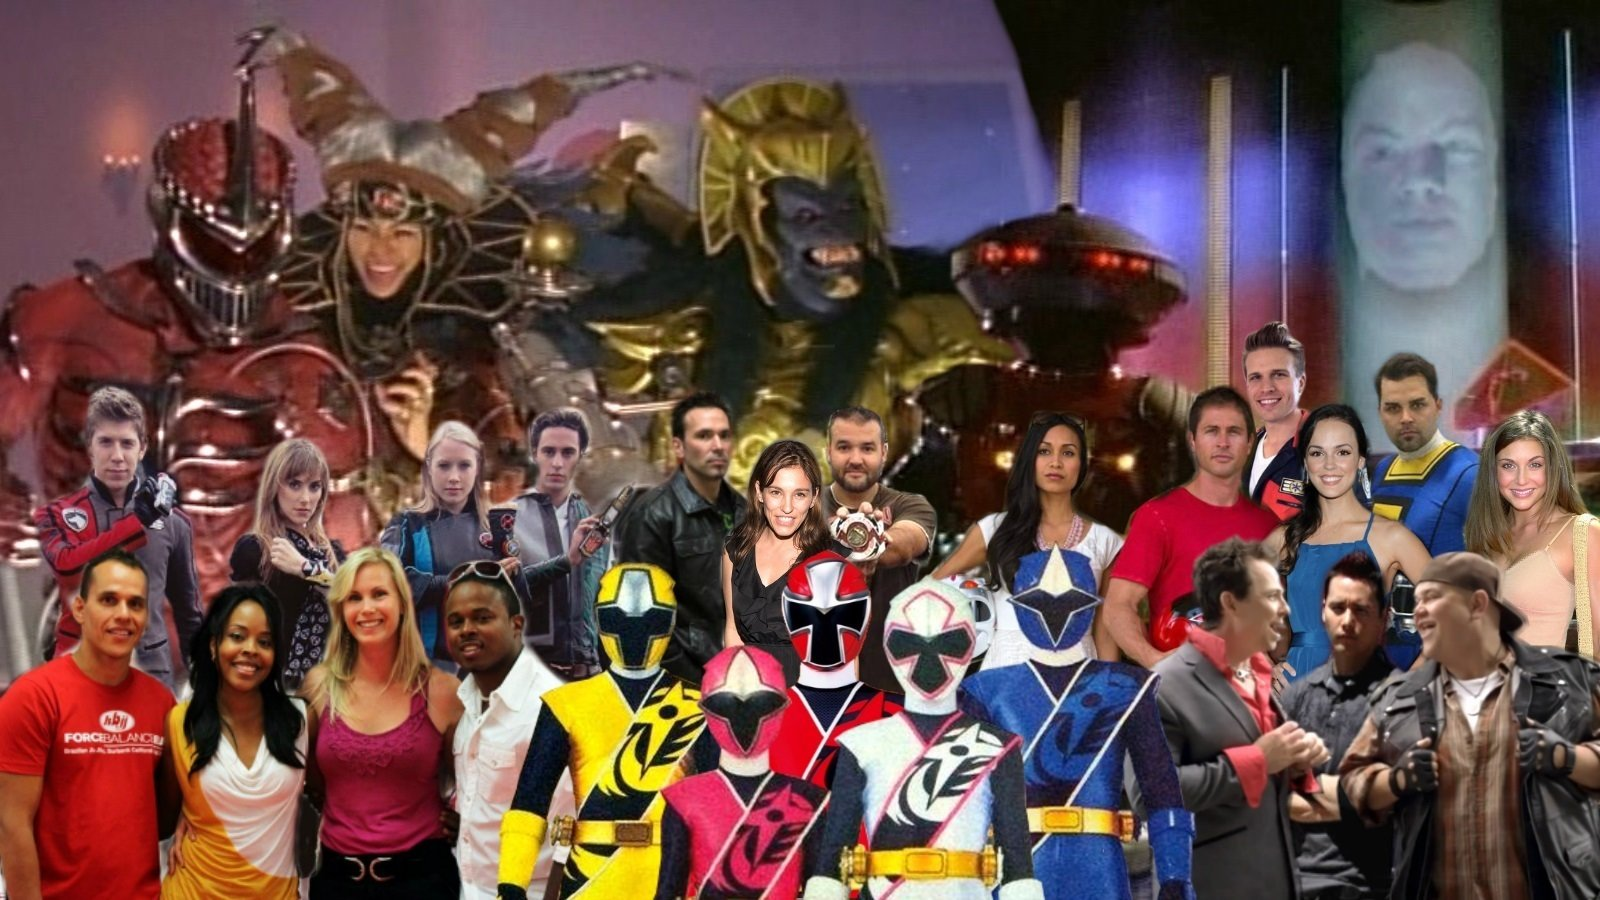 Petition Saban Brands Please Create A Power Rangers Reunion